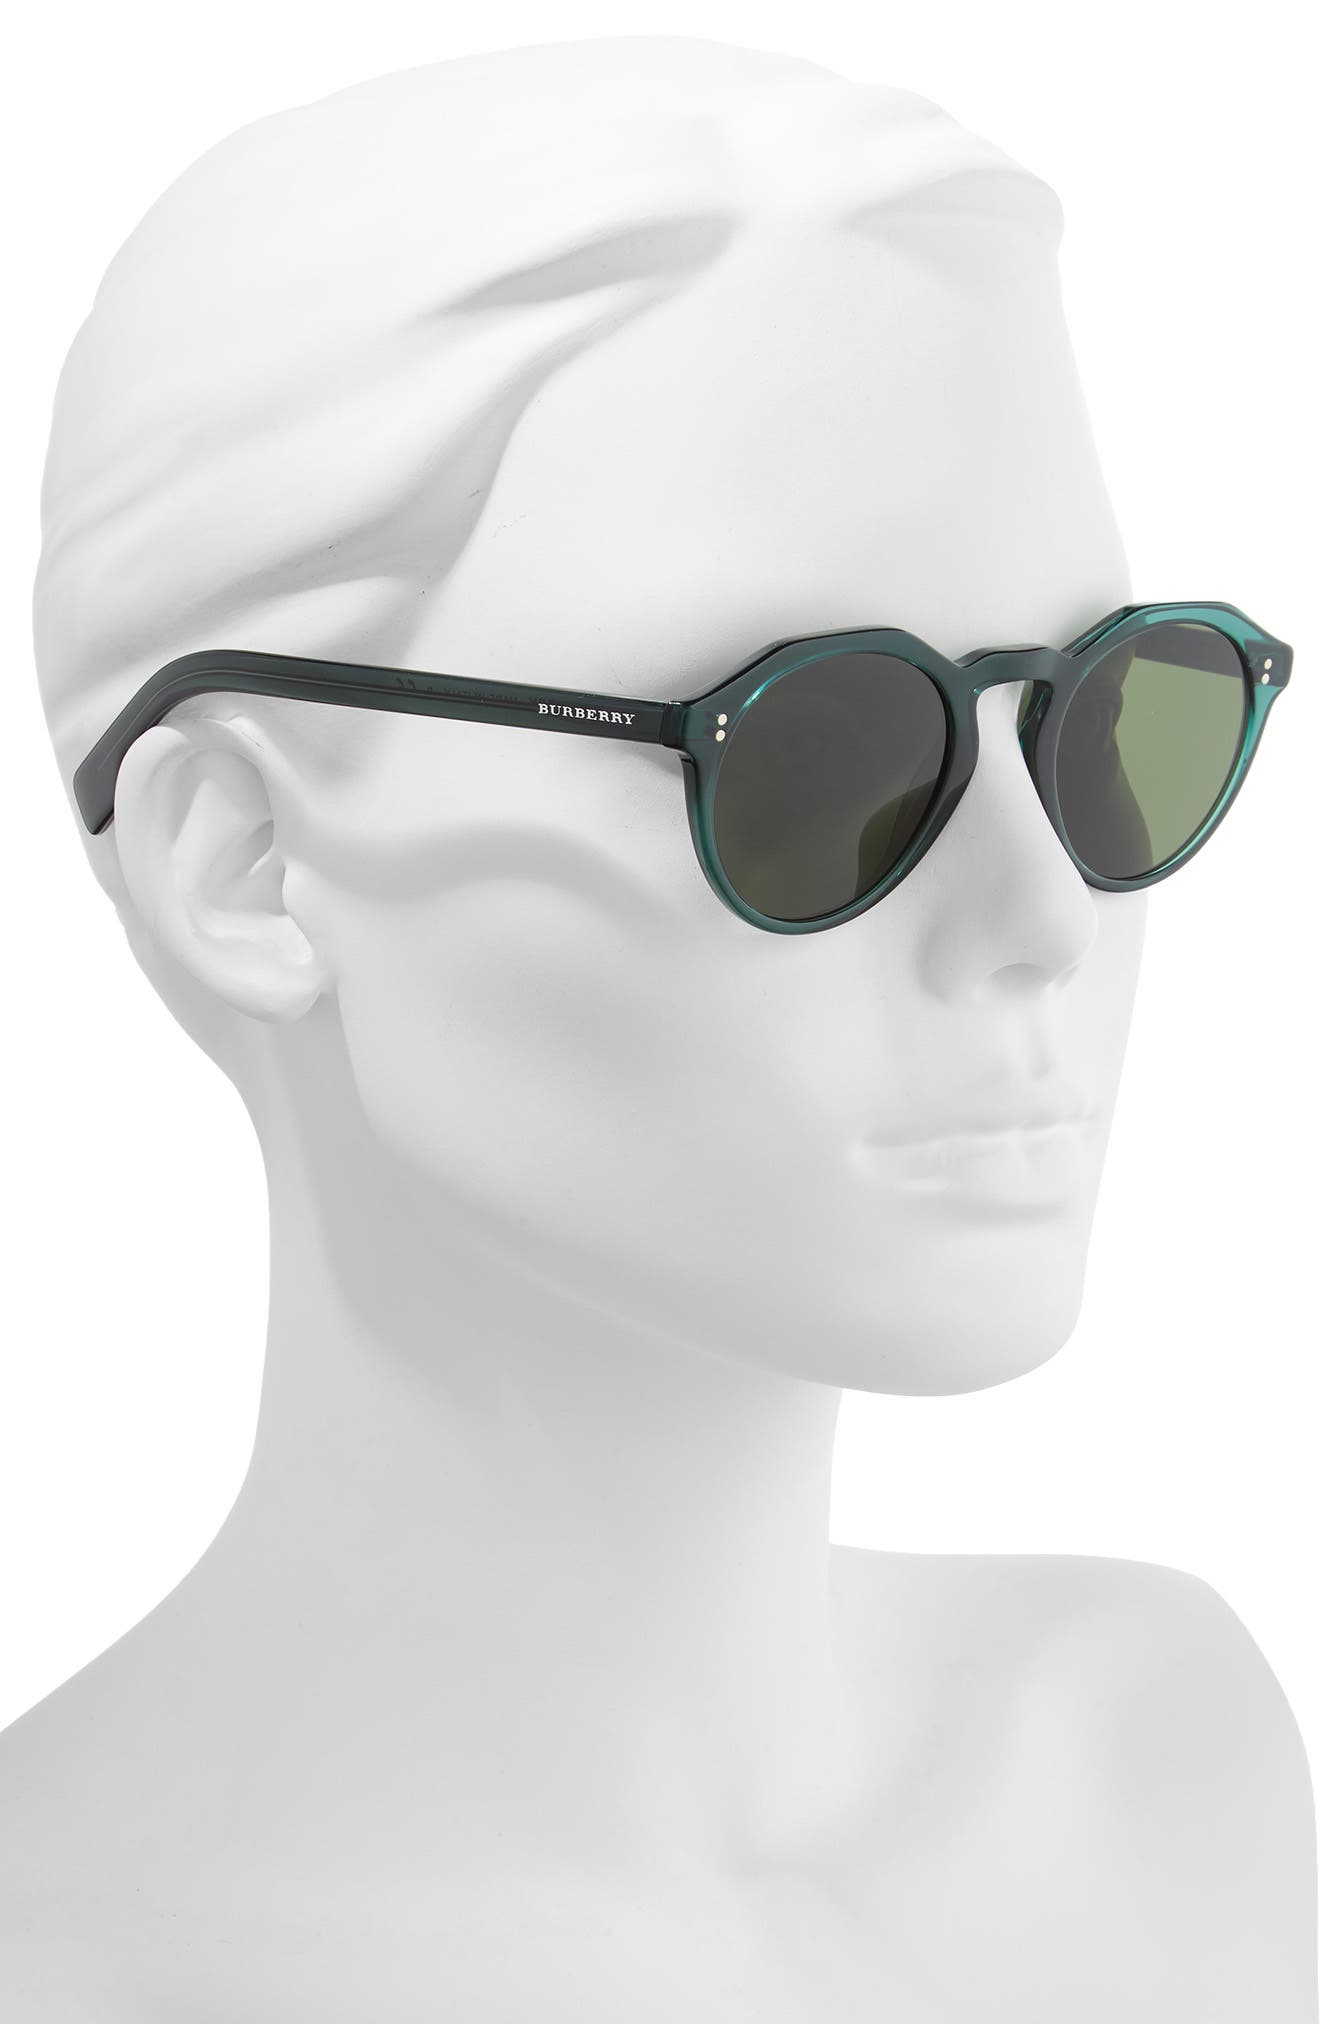 48mm Round Sunglasses,                             Alternate thumbnail 2, color,                             GREEN/ GREEN SOLID